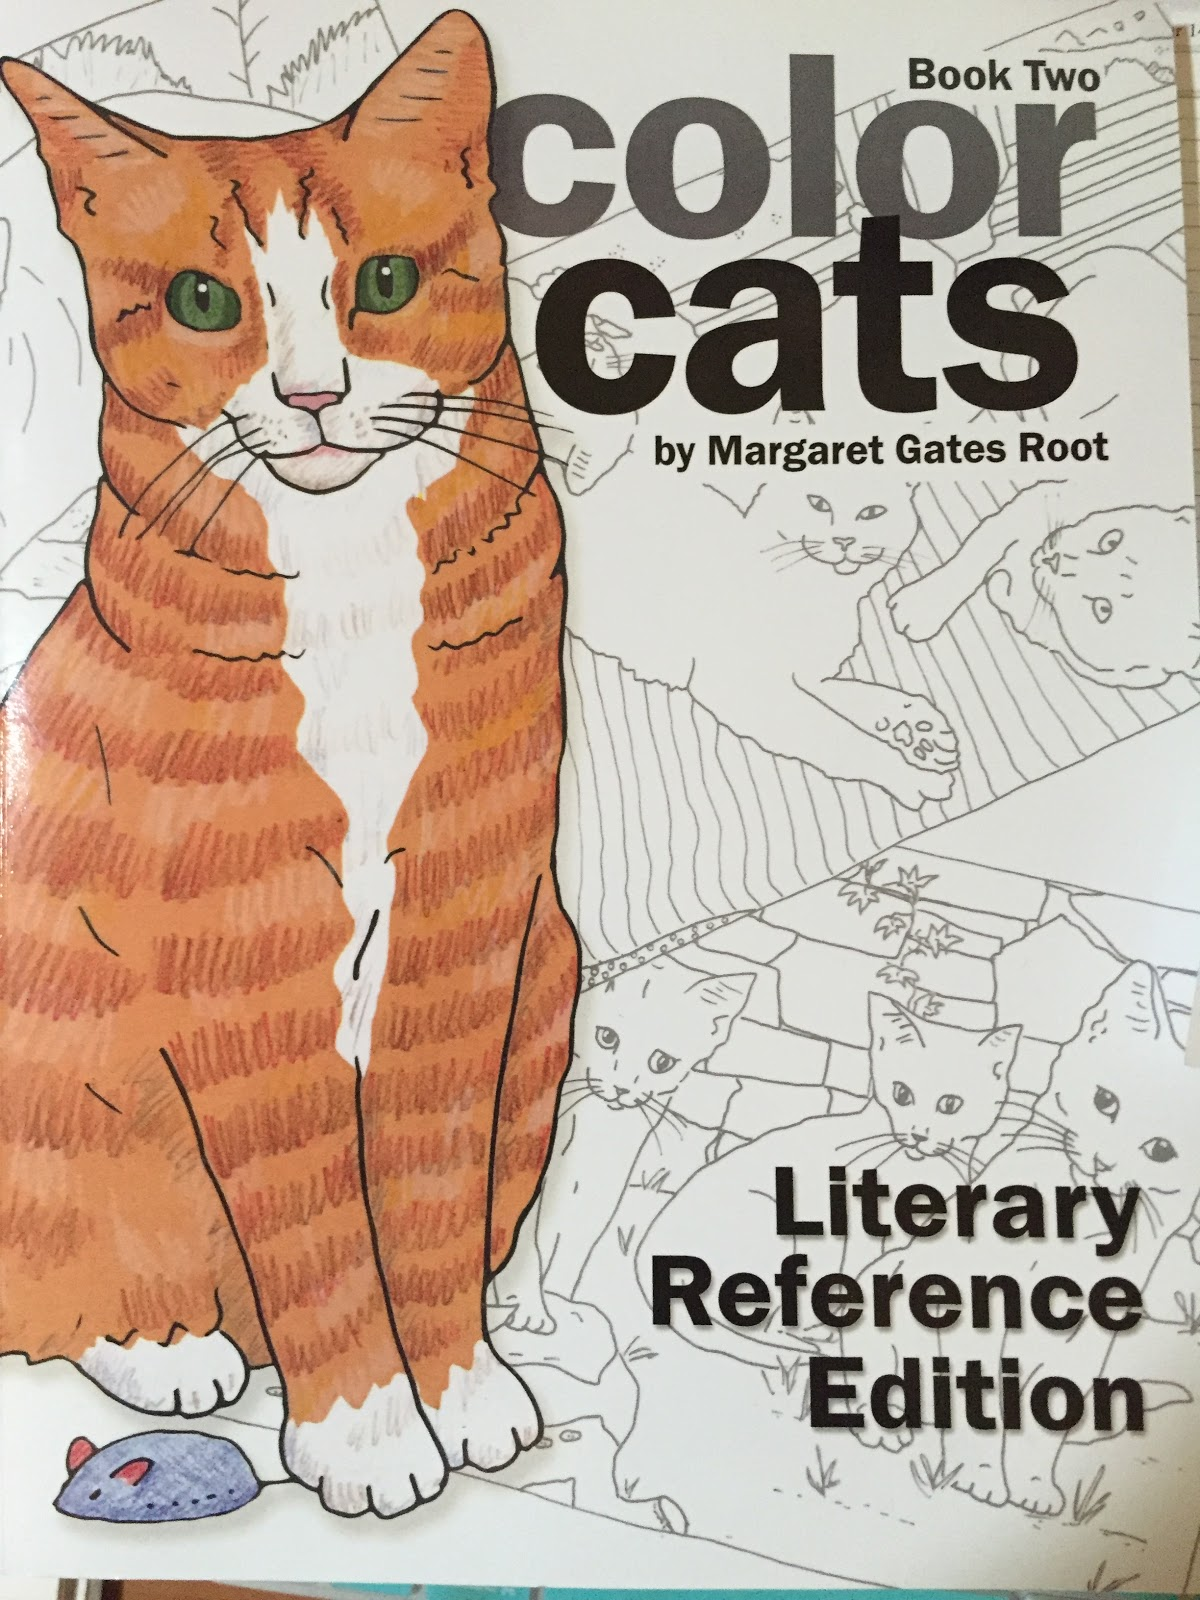 Color cats like - Book Two Color Cats By Margaret Gates Root A Literary Reference And Cats When I Saw This Picture Of The Cats And The Typewriter Below I Knew I Had To